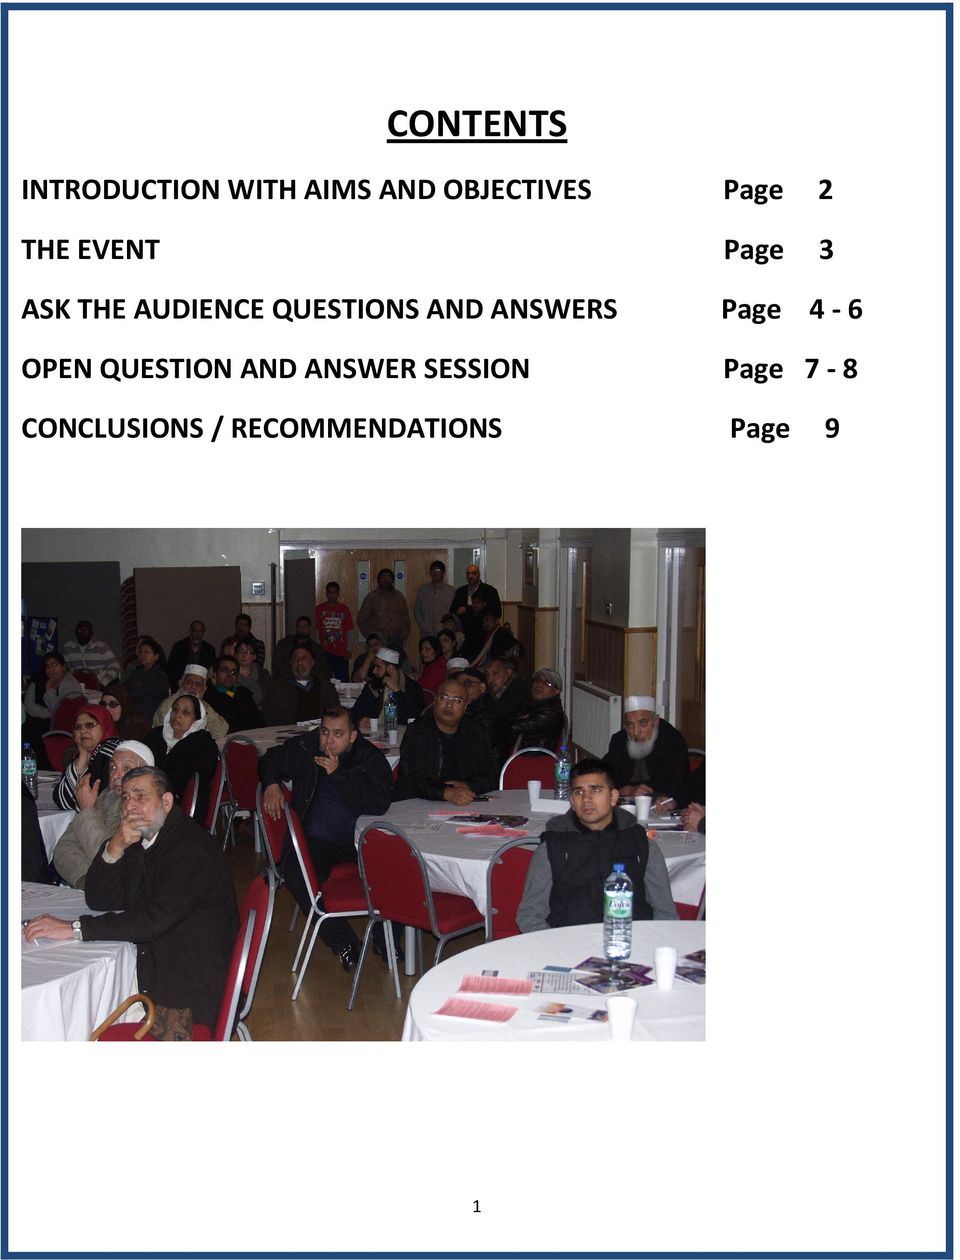 QUESTIONS AND ANSWERS Page 4-6 OPEN QUESTION AND